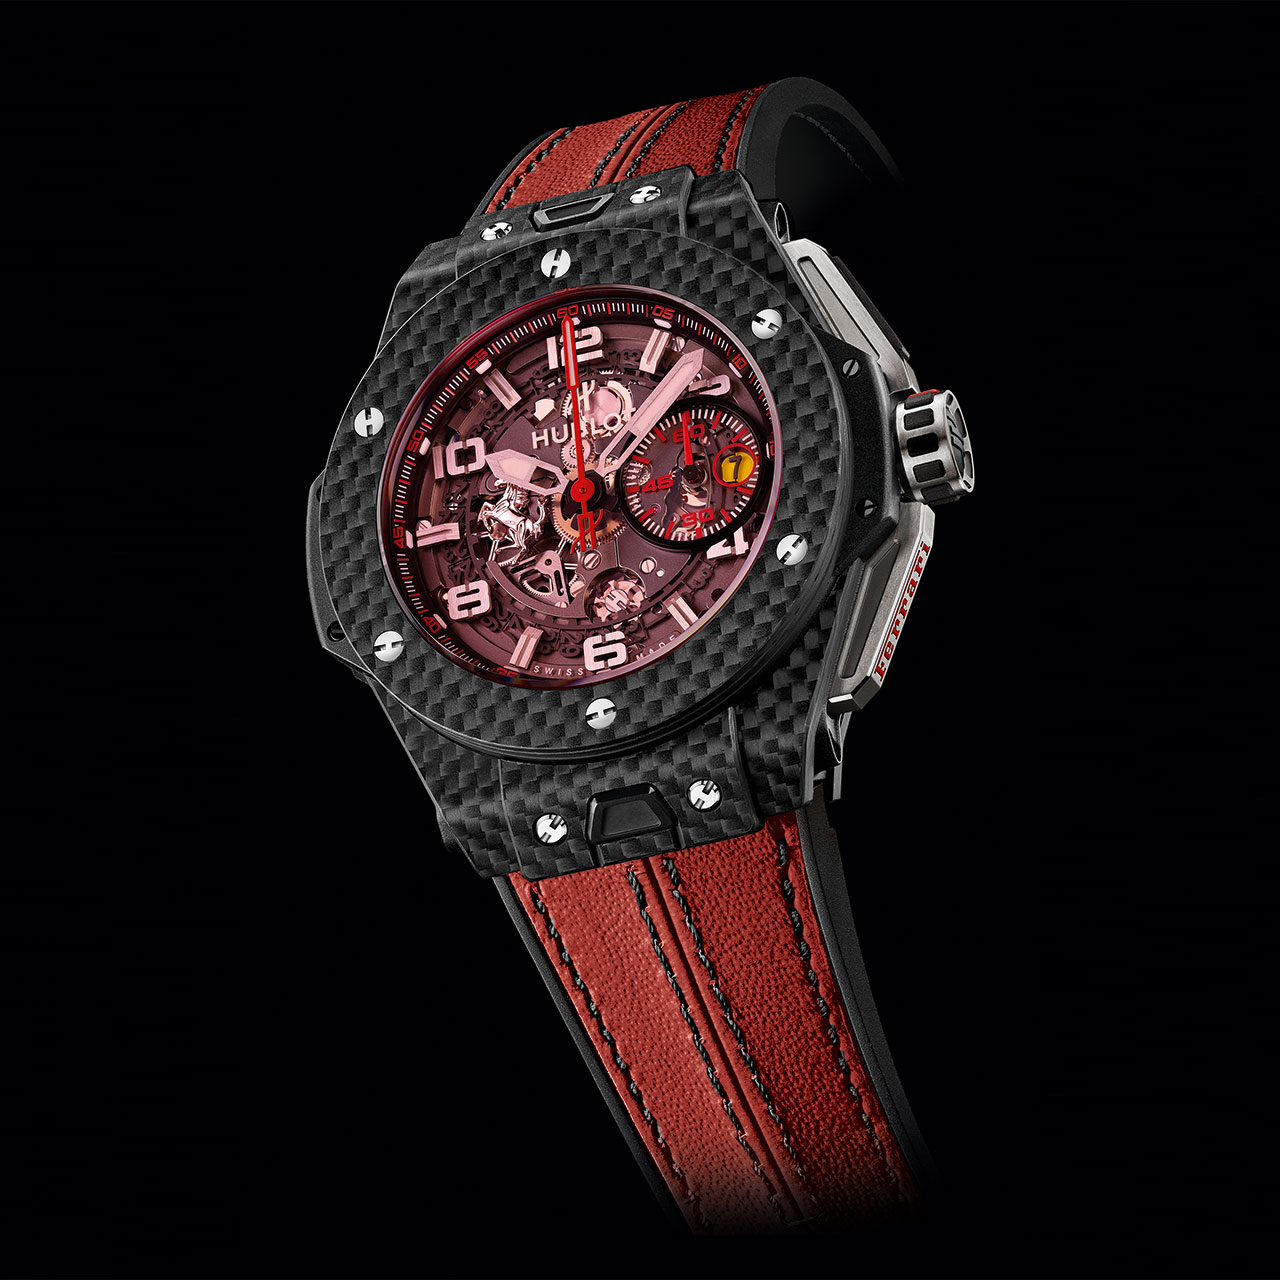 Luxury Cars And Watches Boxfox1 March 2013 Traveltime Sl 10 03 Laptop Case Orange Hublot Big Bang Ferrari Carbon Red Magic Watch